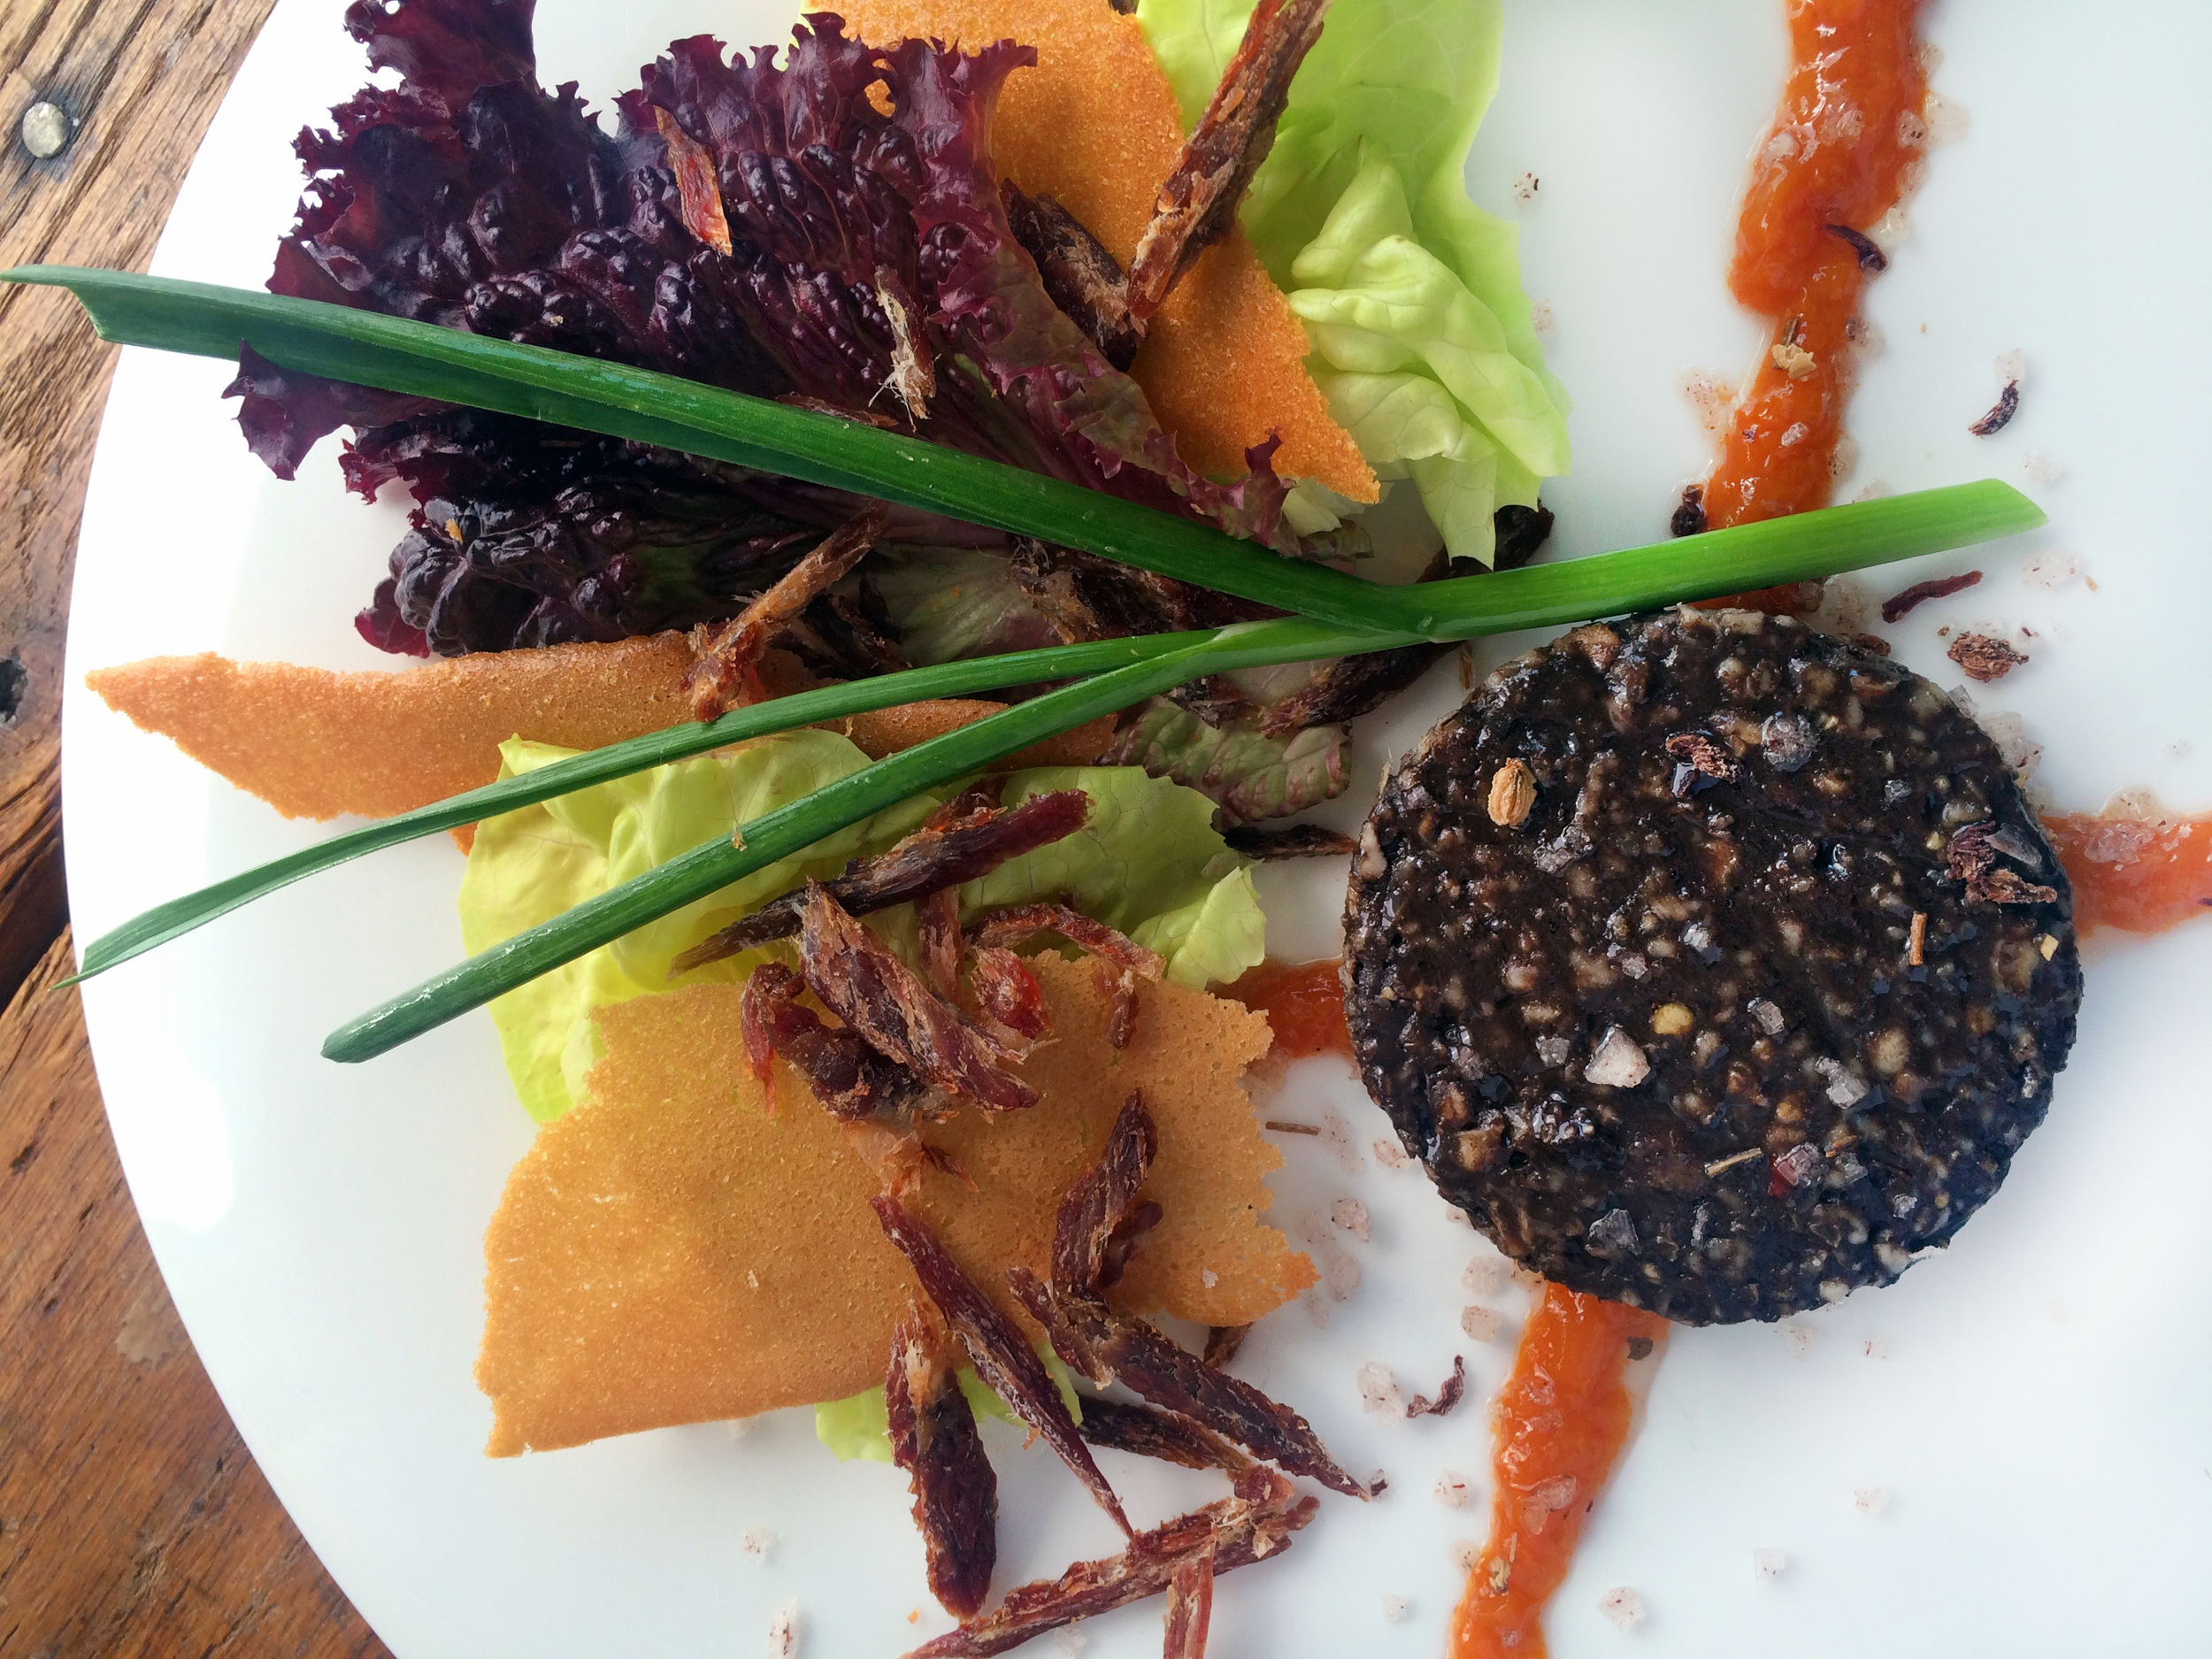 Pork Jerky & Black Pudding, Marmite Tuile, Market Greens, Spiced Carrot Marmalade